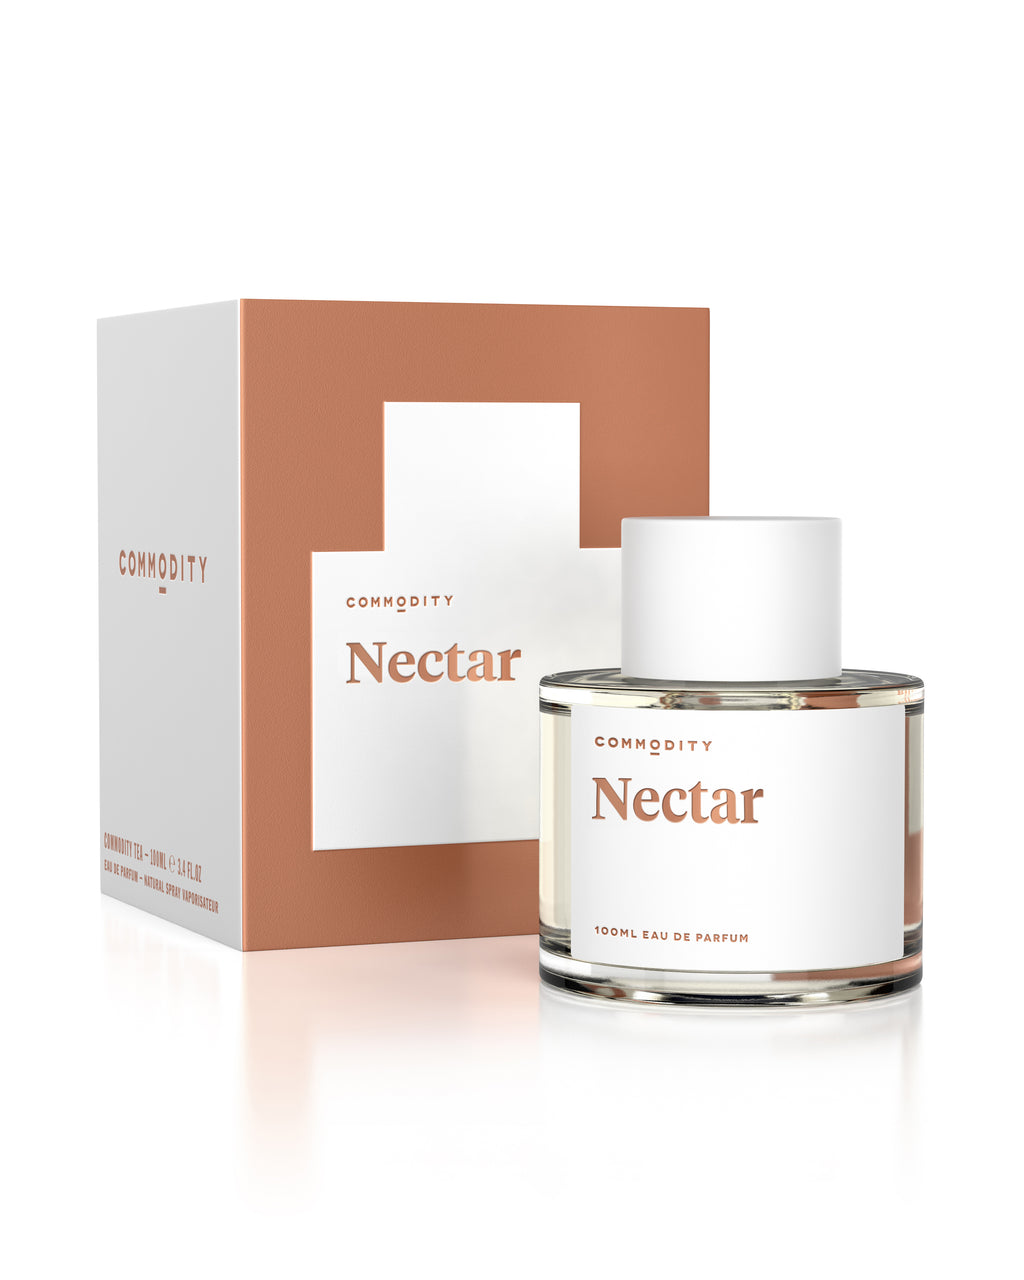 Commodity Nectar 100ml EDP